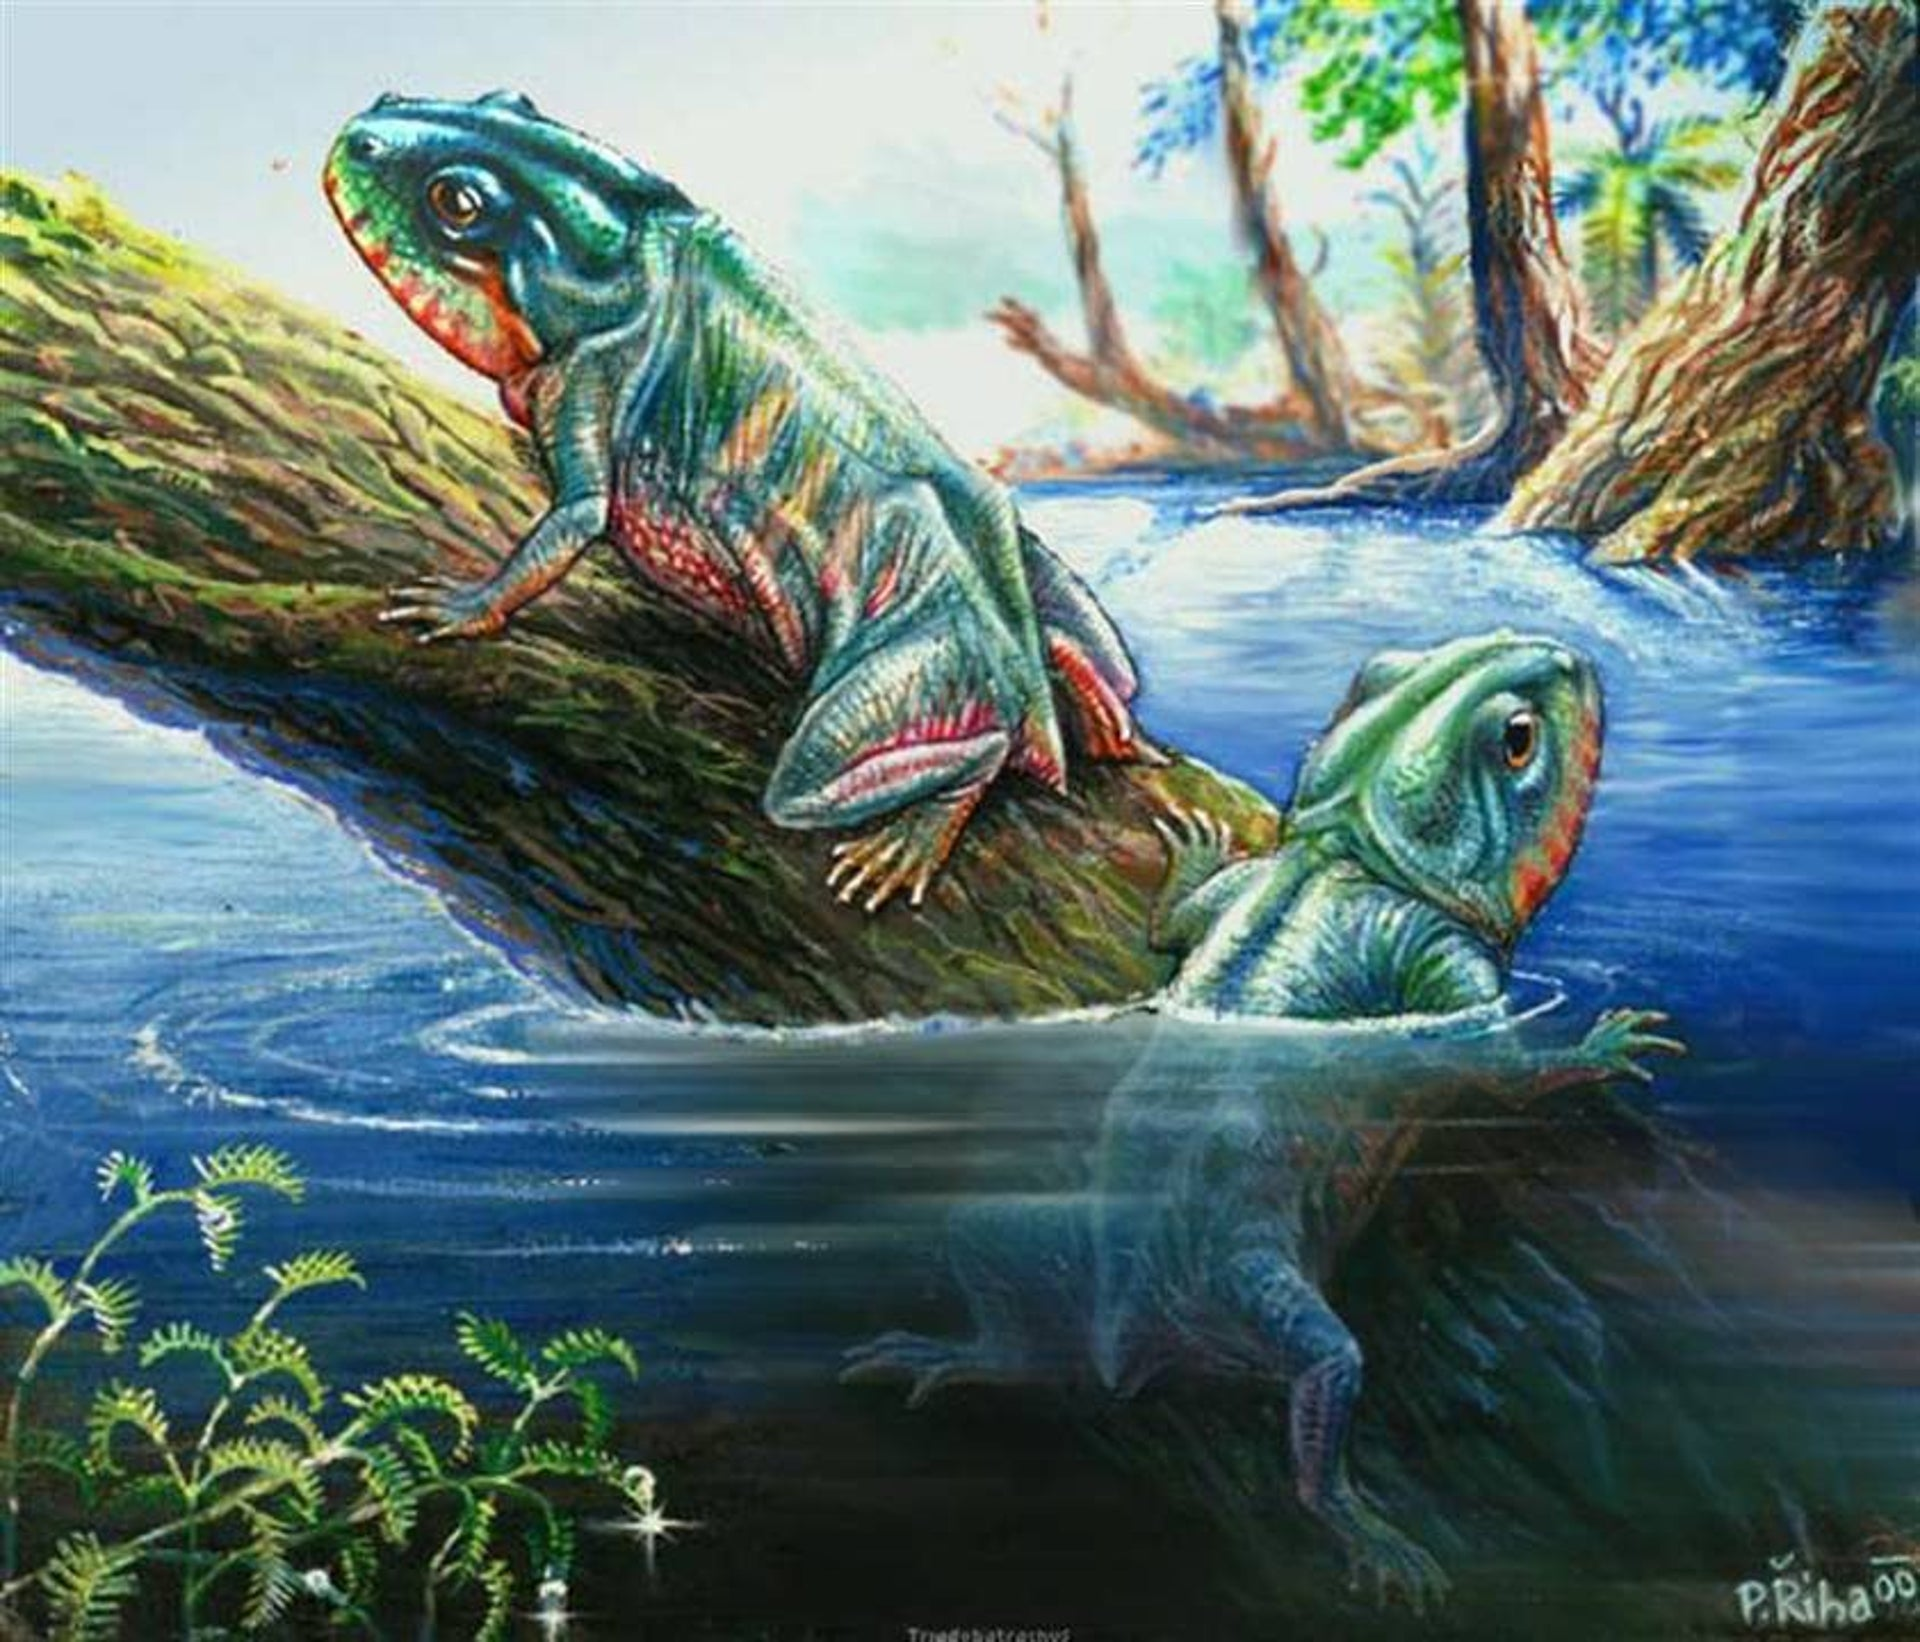 The earliest froglike amphibian for which we have fossil evidence: Triadobatrachus massinoti, a big one about 10 centimeters long, which had a lot more vertebrae in its spine than frogs do today